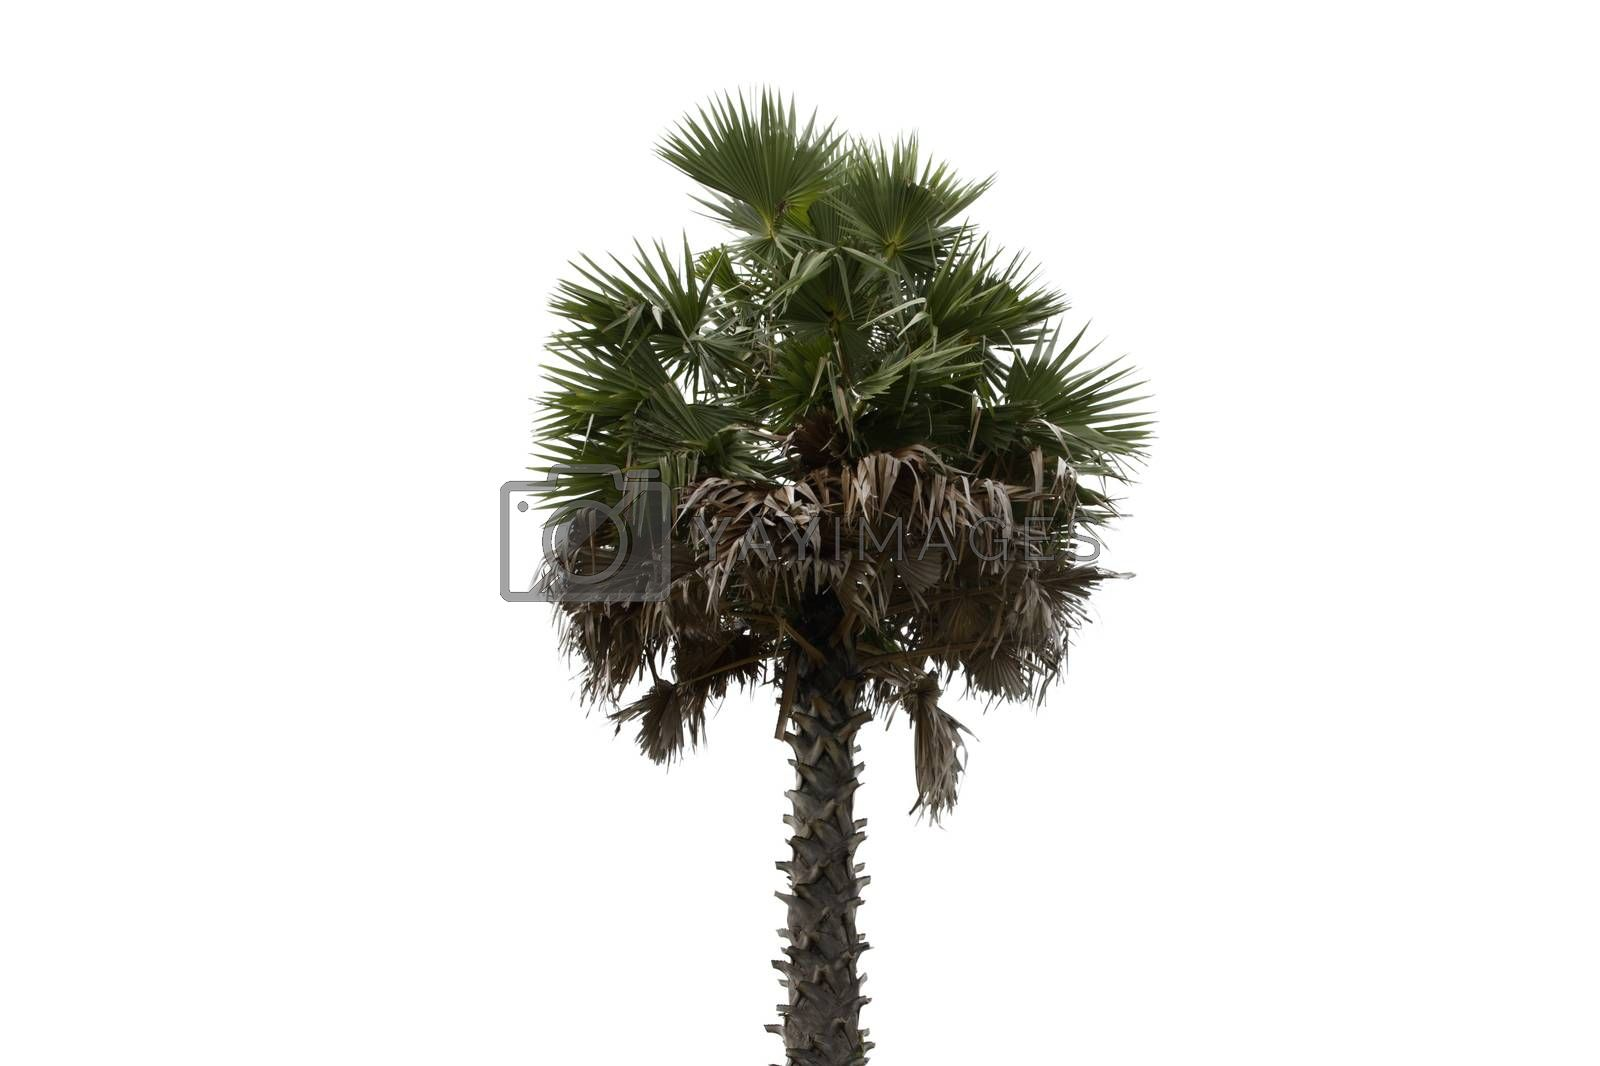 One old palm tree isolated on white background.